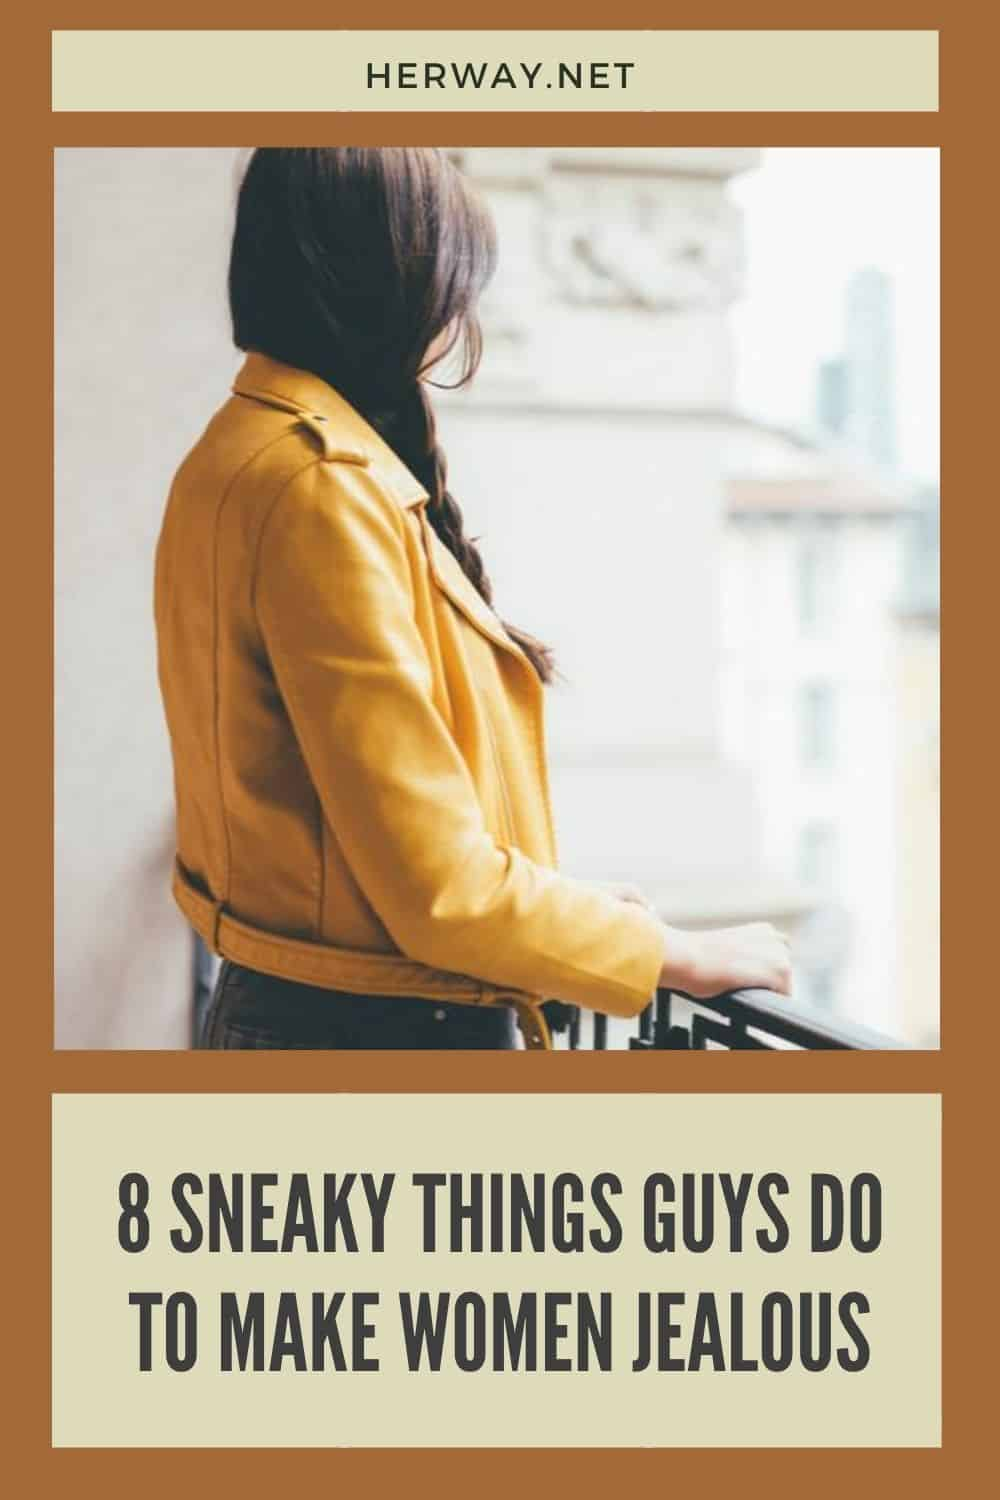 8 Sneaky Things Guys Do To Make Women Jealous